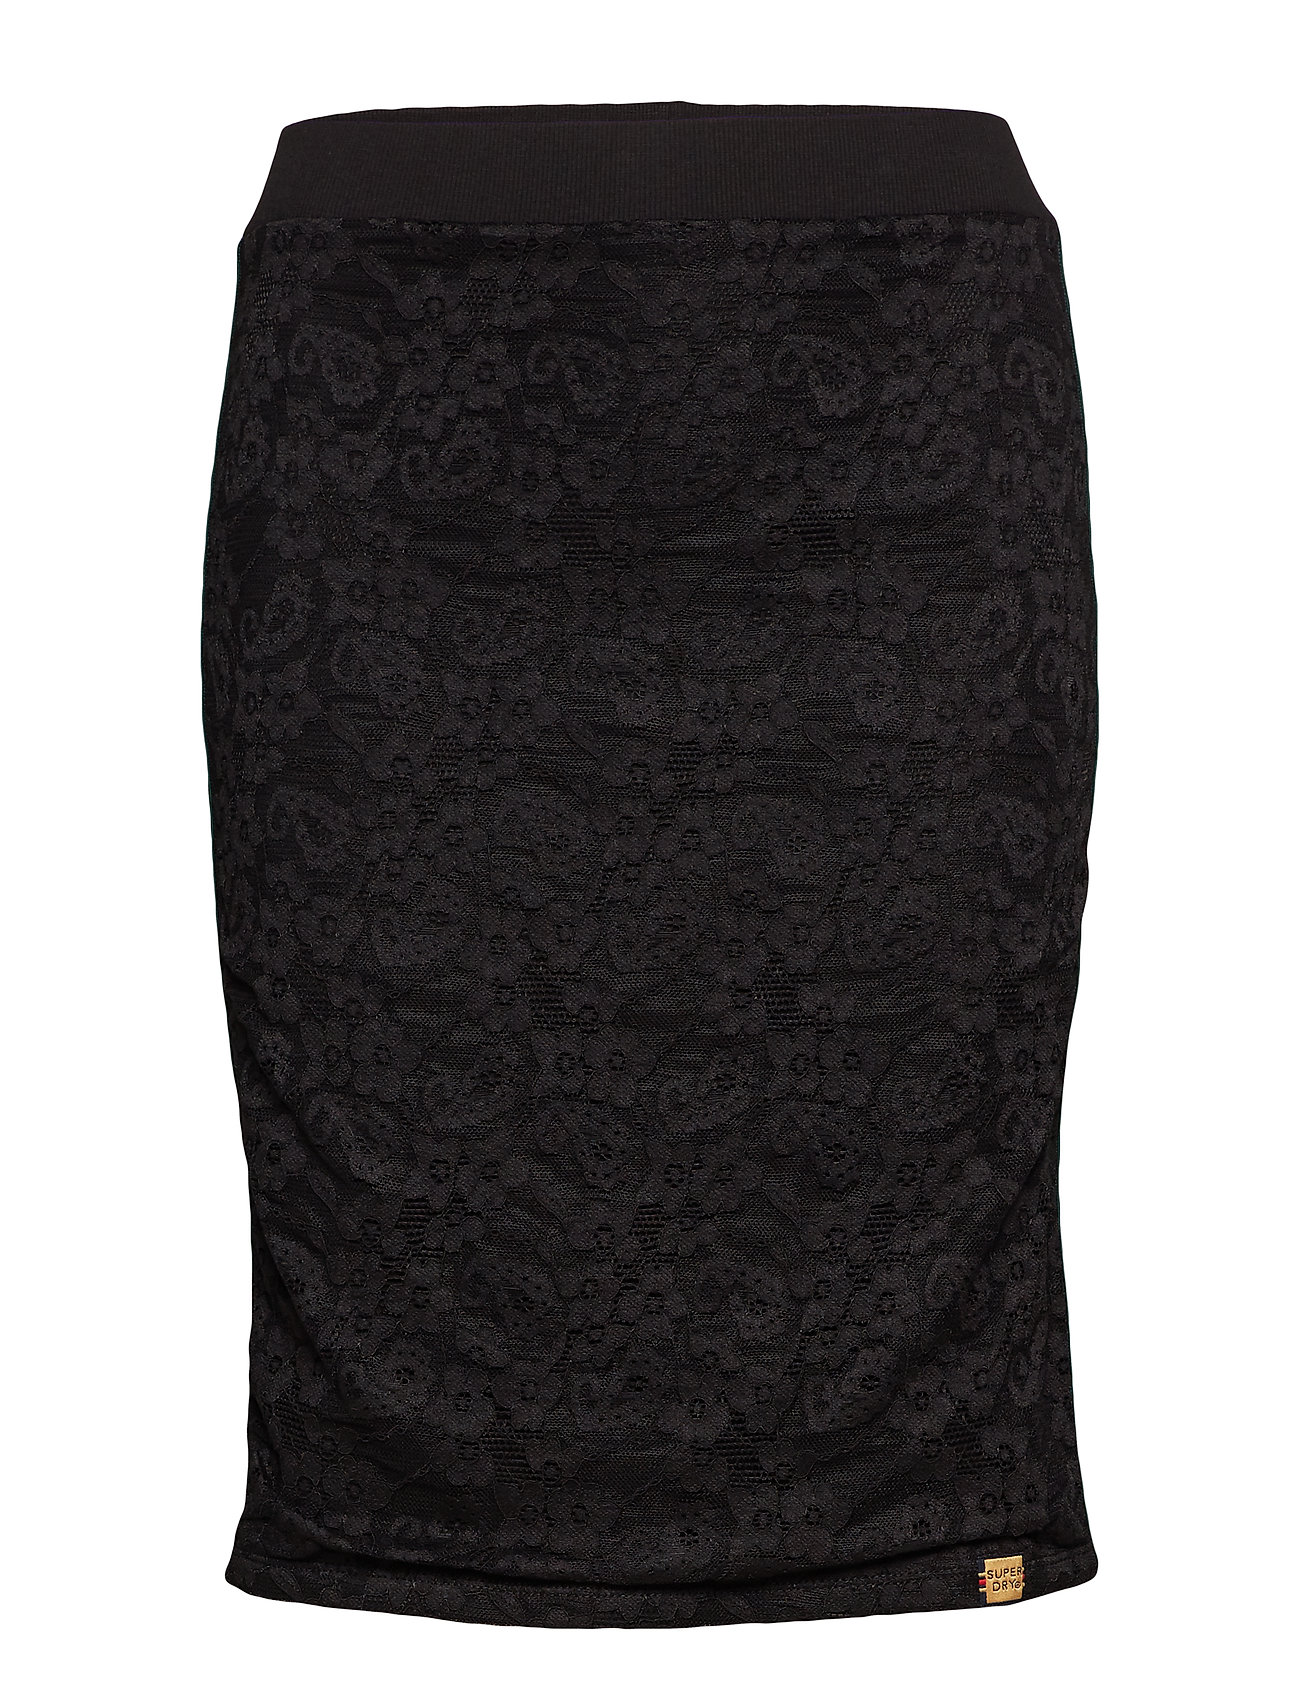 Superdry BLAKE LACE MIDI SKIRT - BLACK LACE